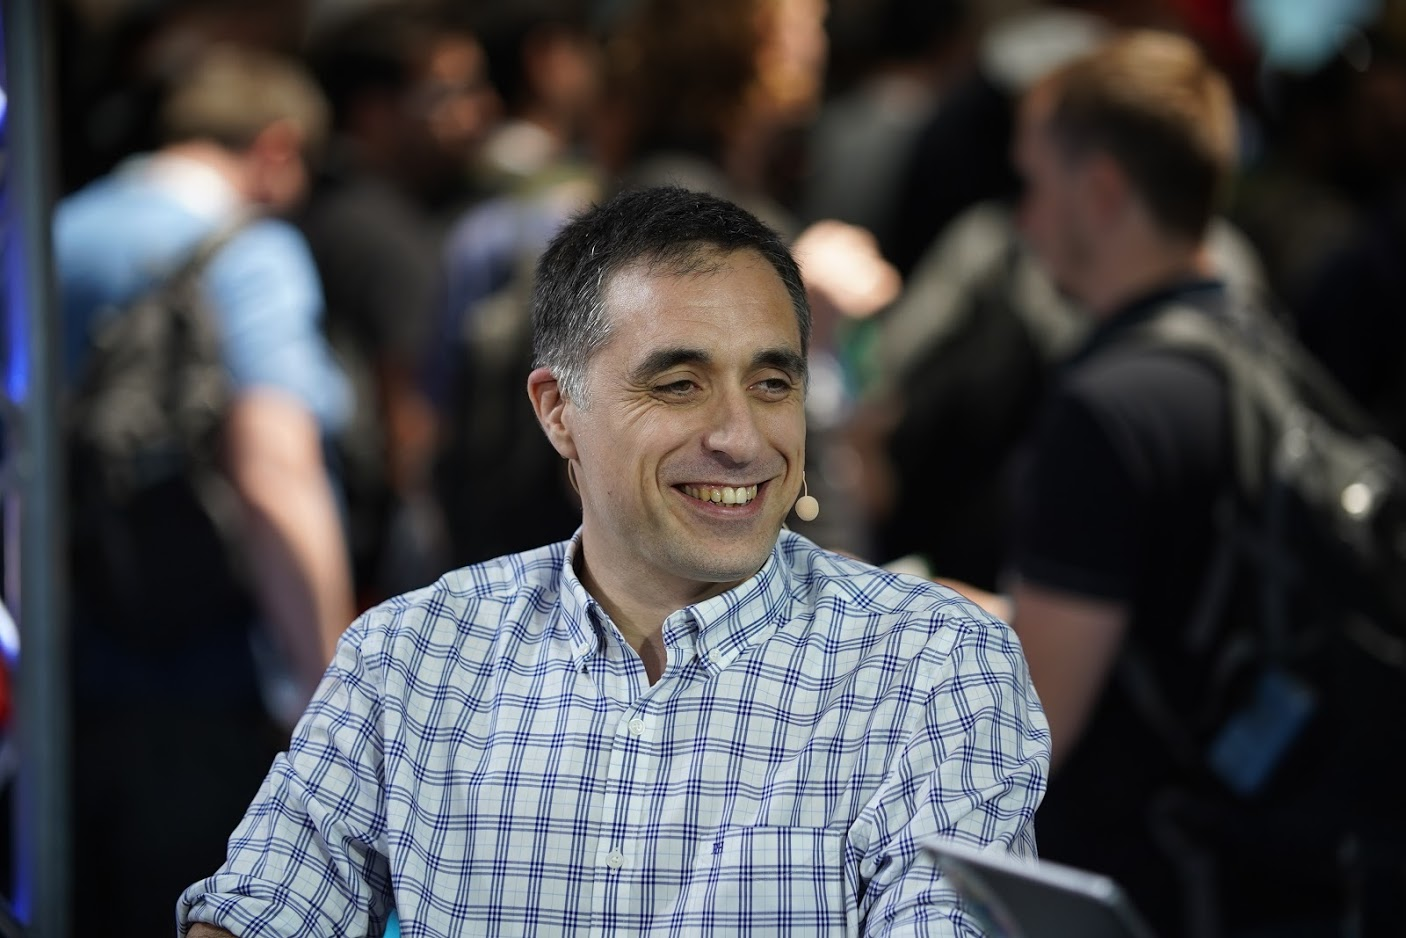 Q&A: VMware acquires Bitnami to broaden multicloud strategy: What's next?